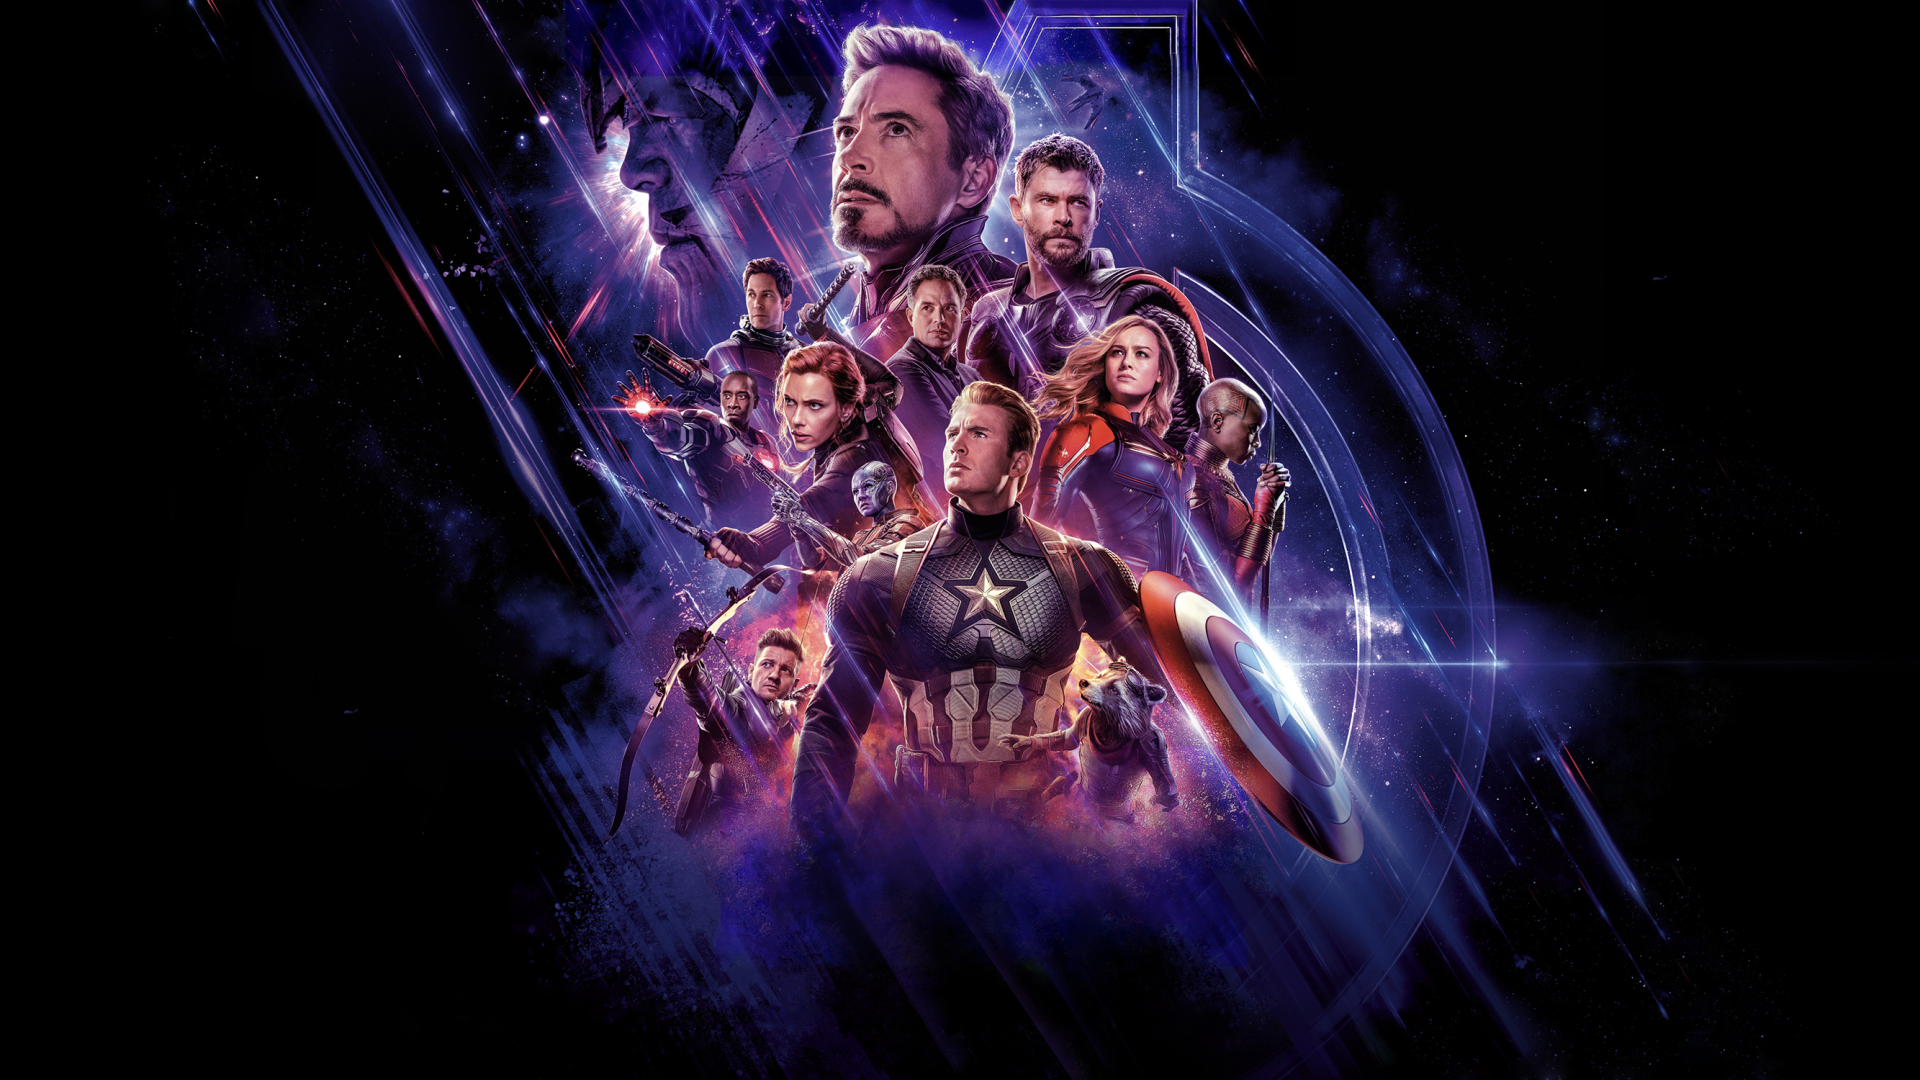 260 Avengers Endgame Hd Wallpapers Background Images Wallpaper